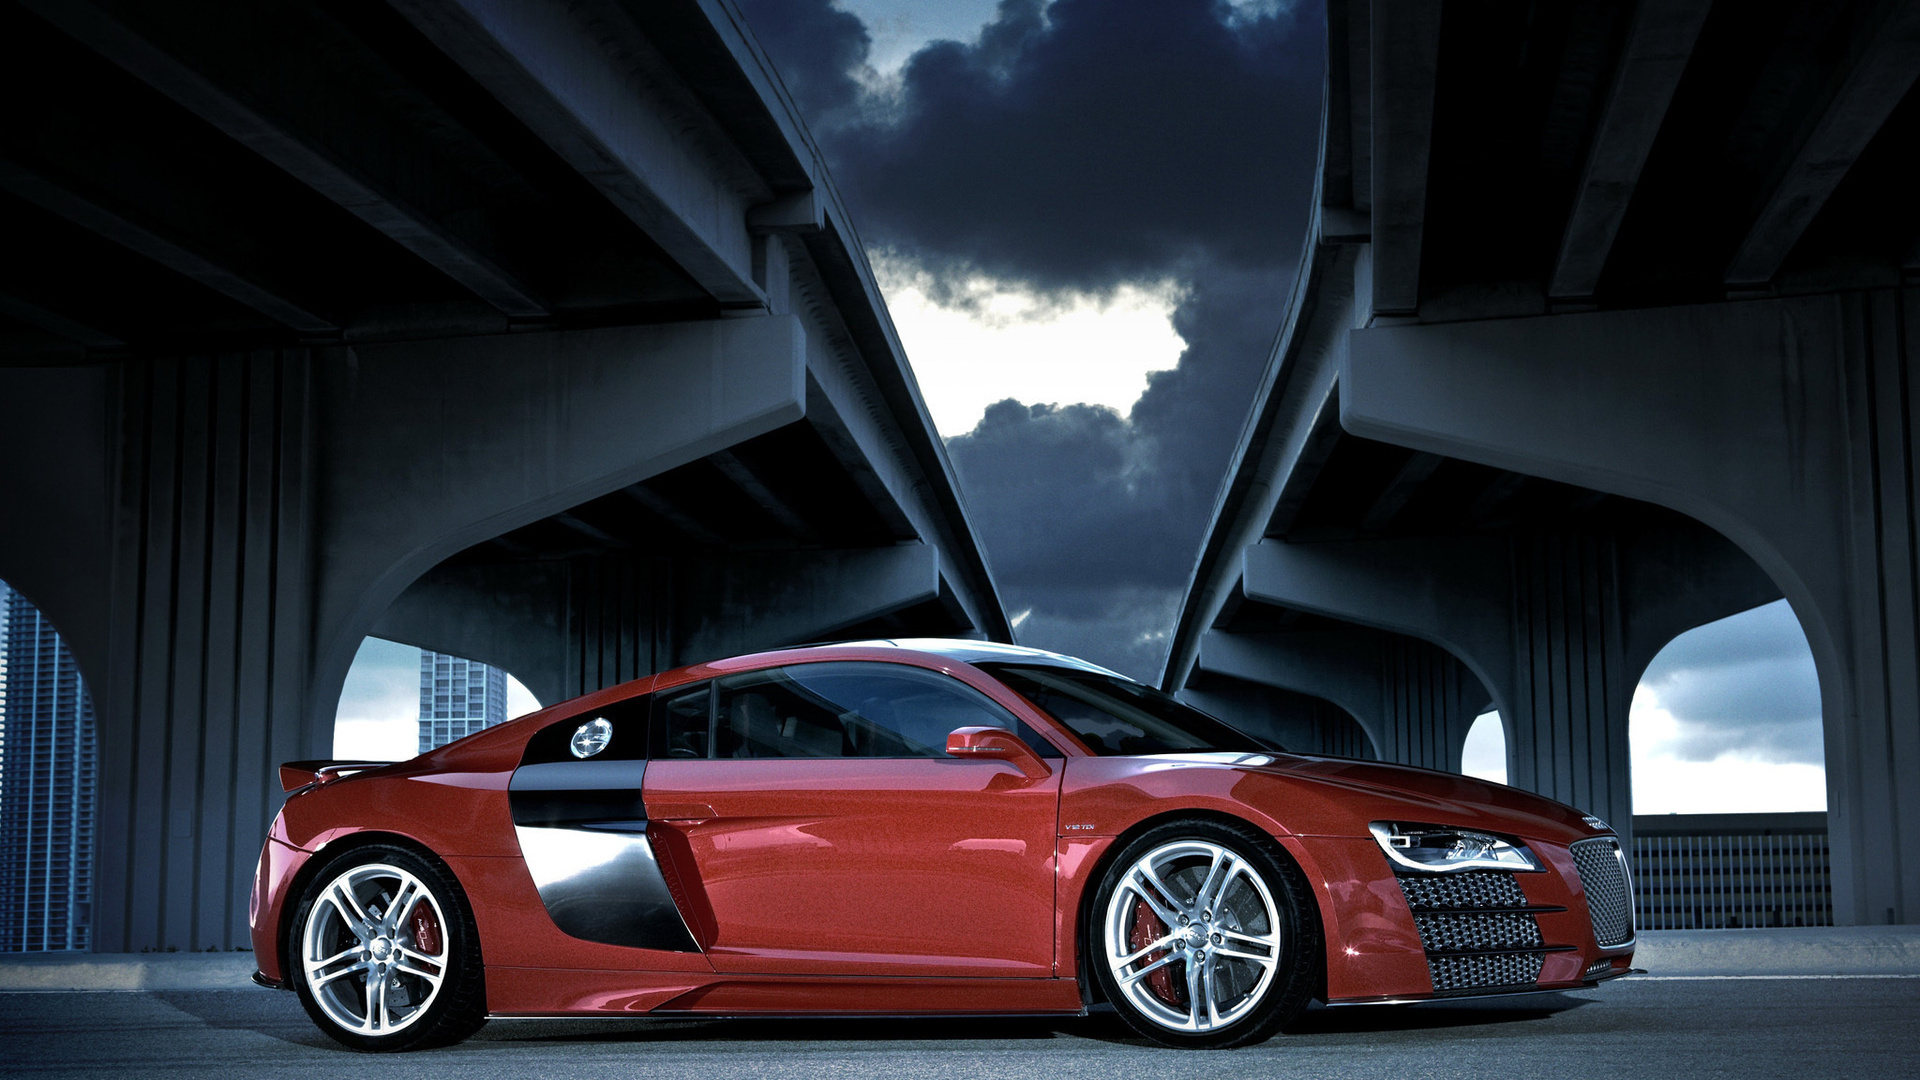 Collection Of Audi Wallpaper Hd Wallpaper Audi On